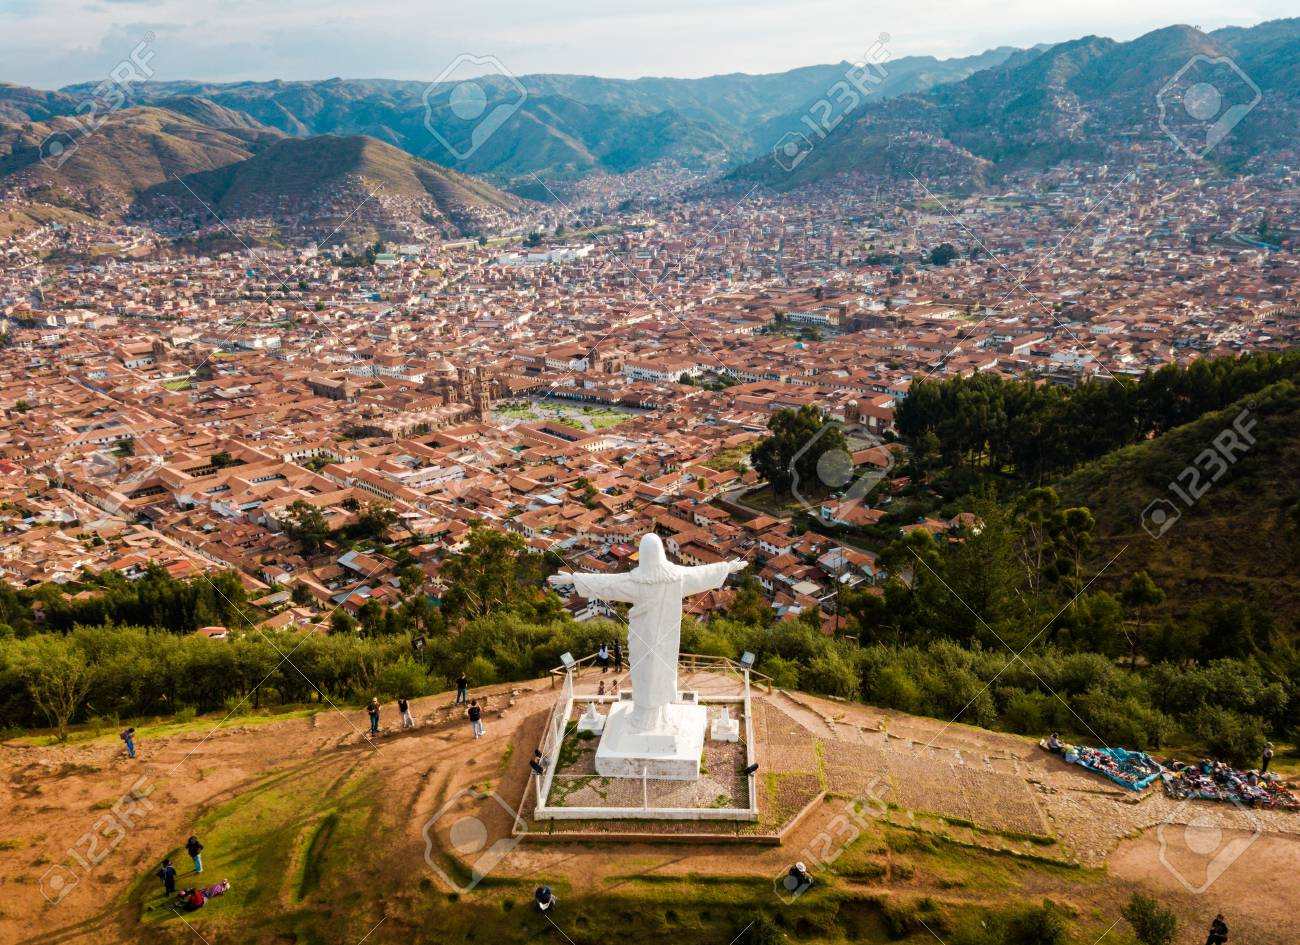 Cusco on a day of excursion: travel the incas ruins